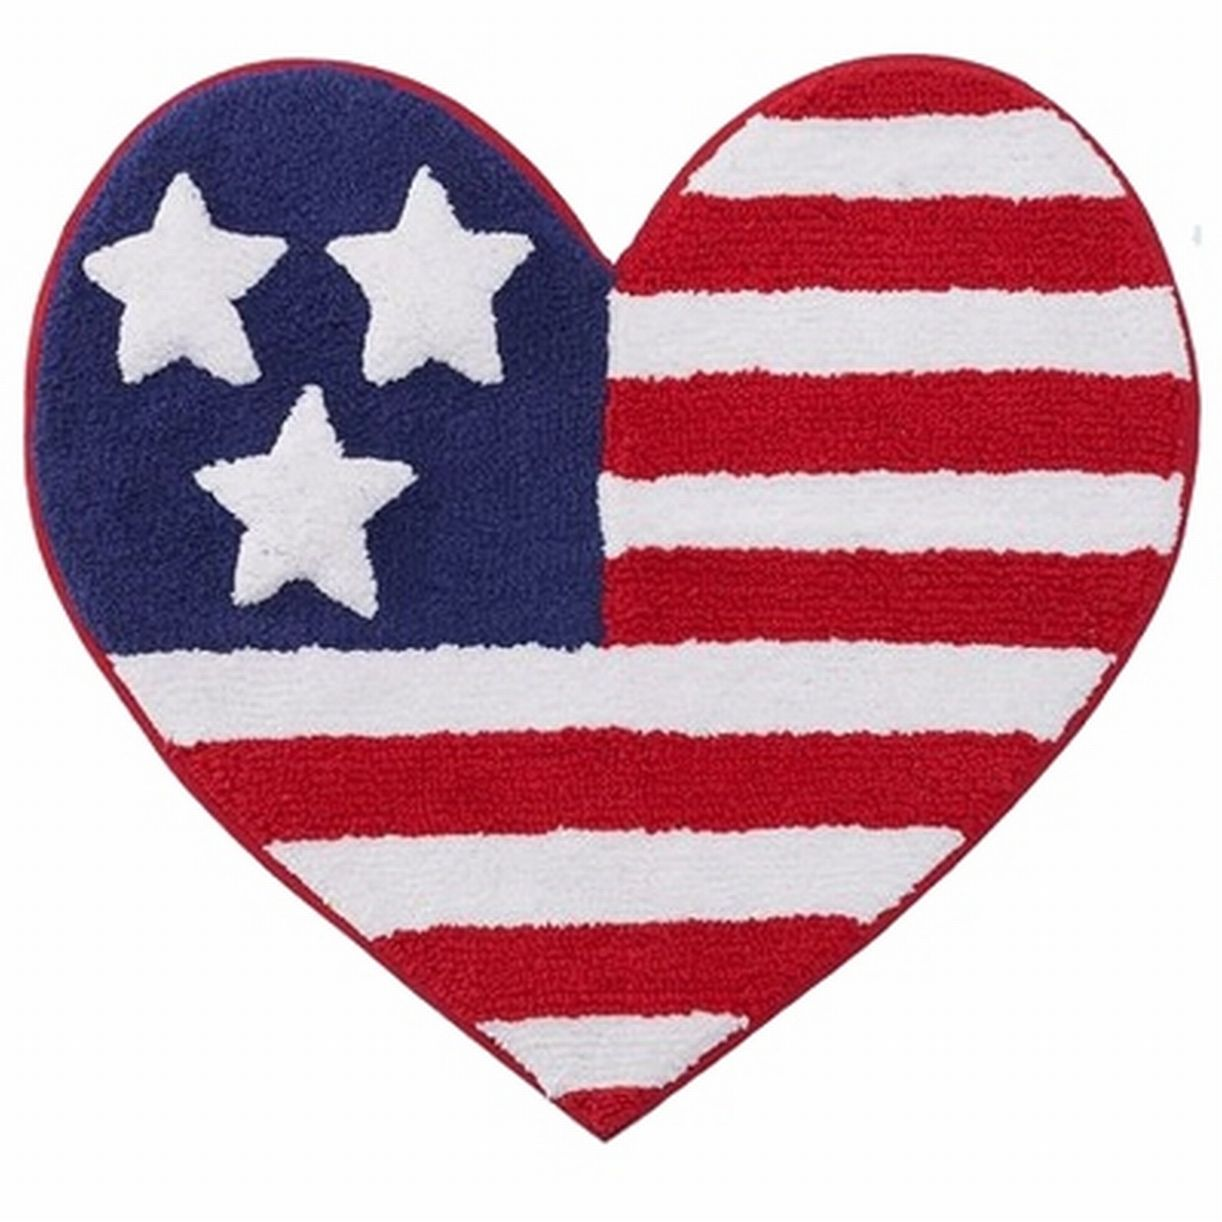 Summer Heart Shaped USA Flag Cotton Bath Rug Skid Resistant Americana Mat